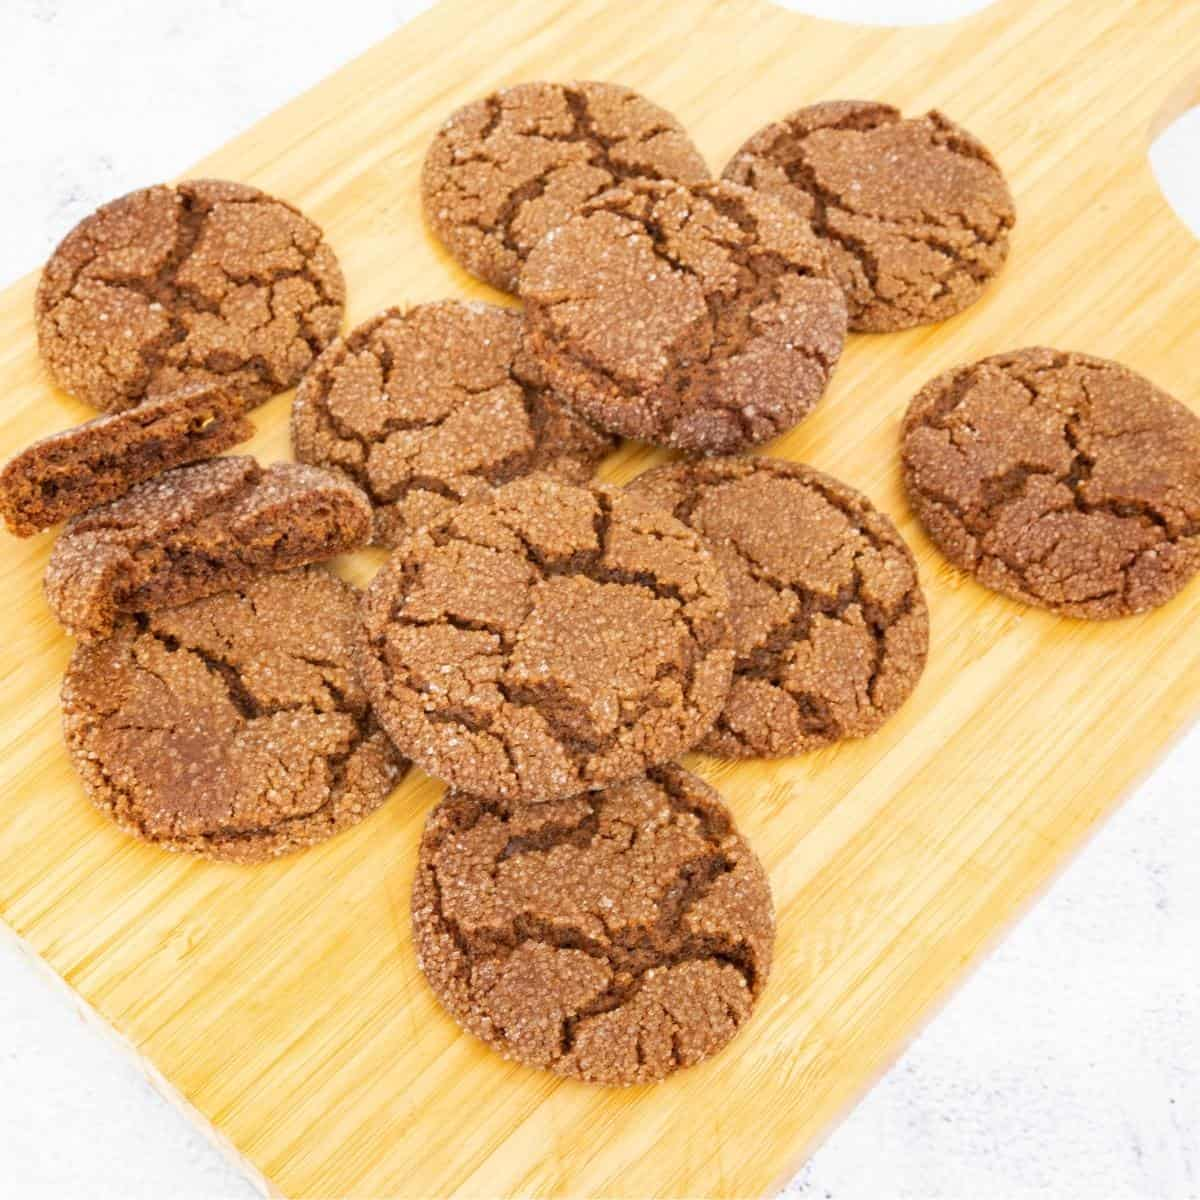 A few cookies on display on a wooden board.